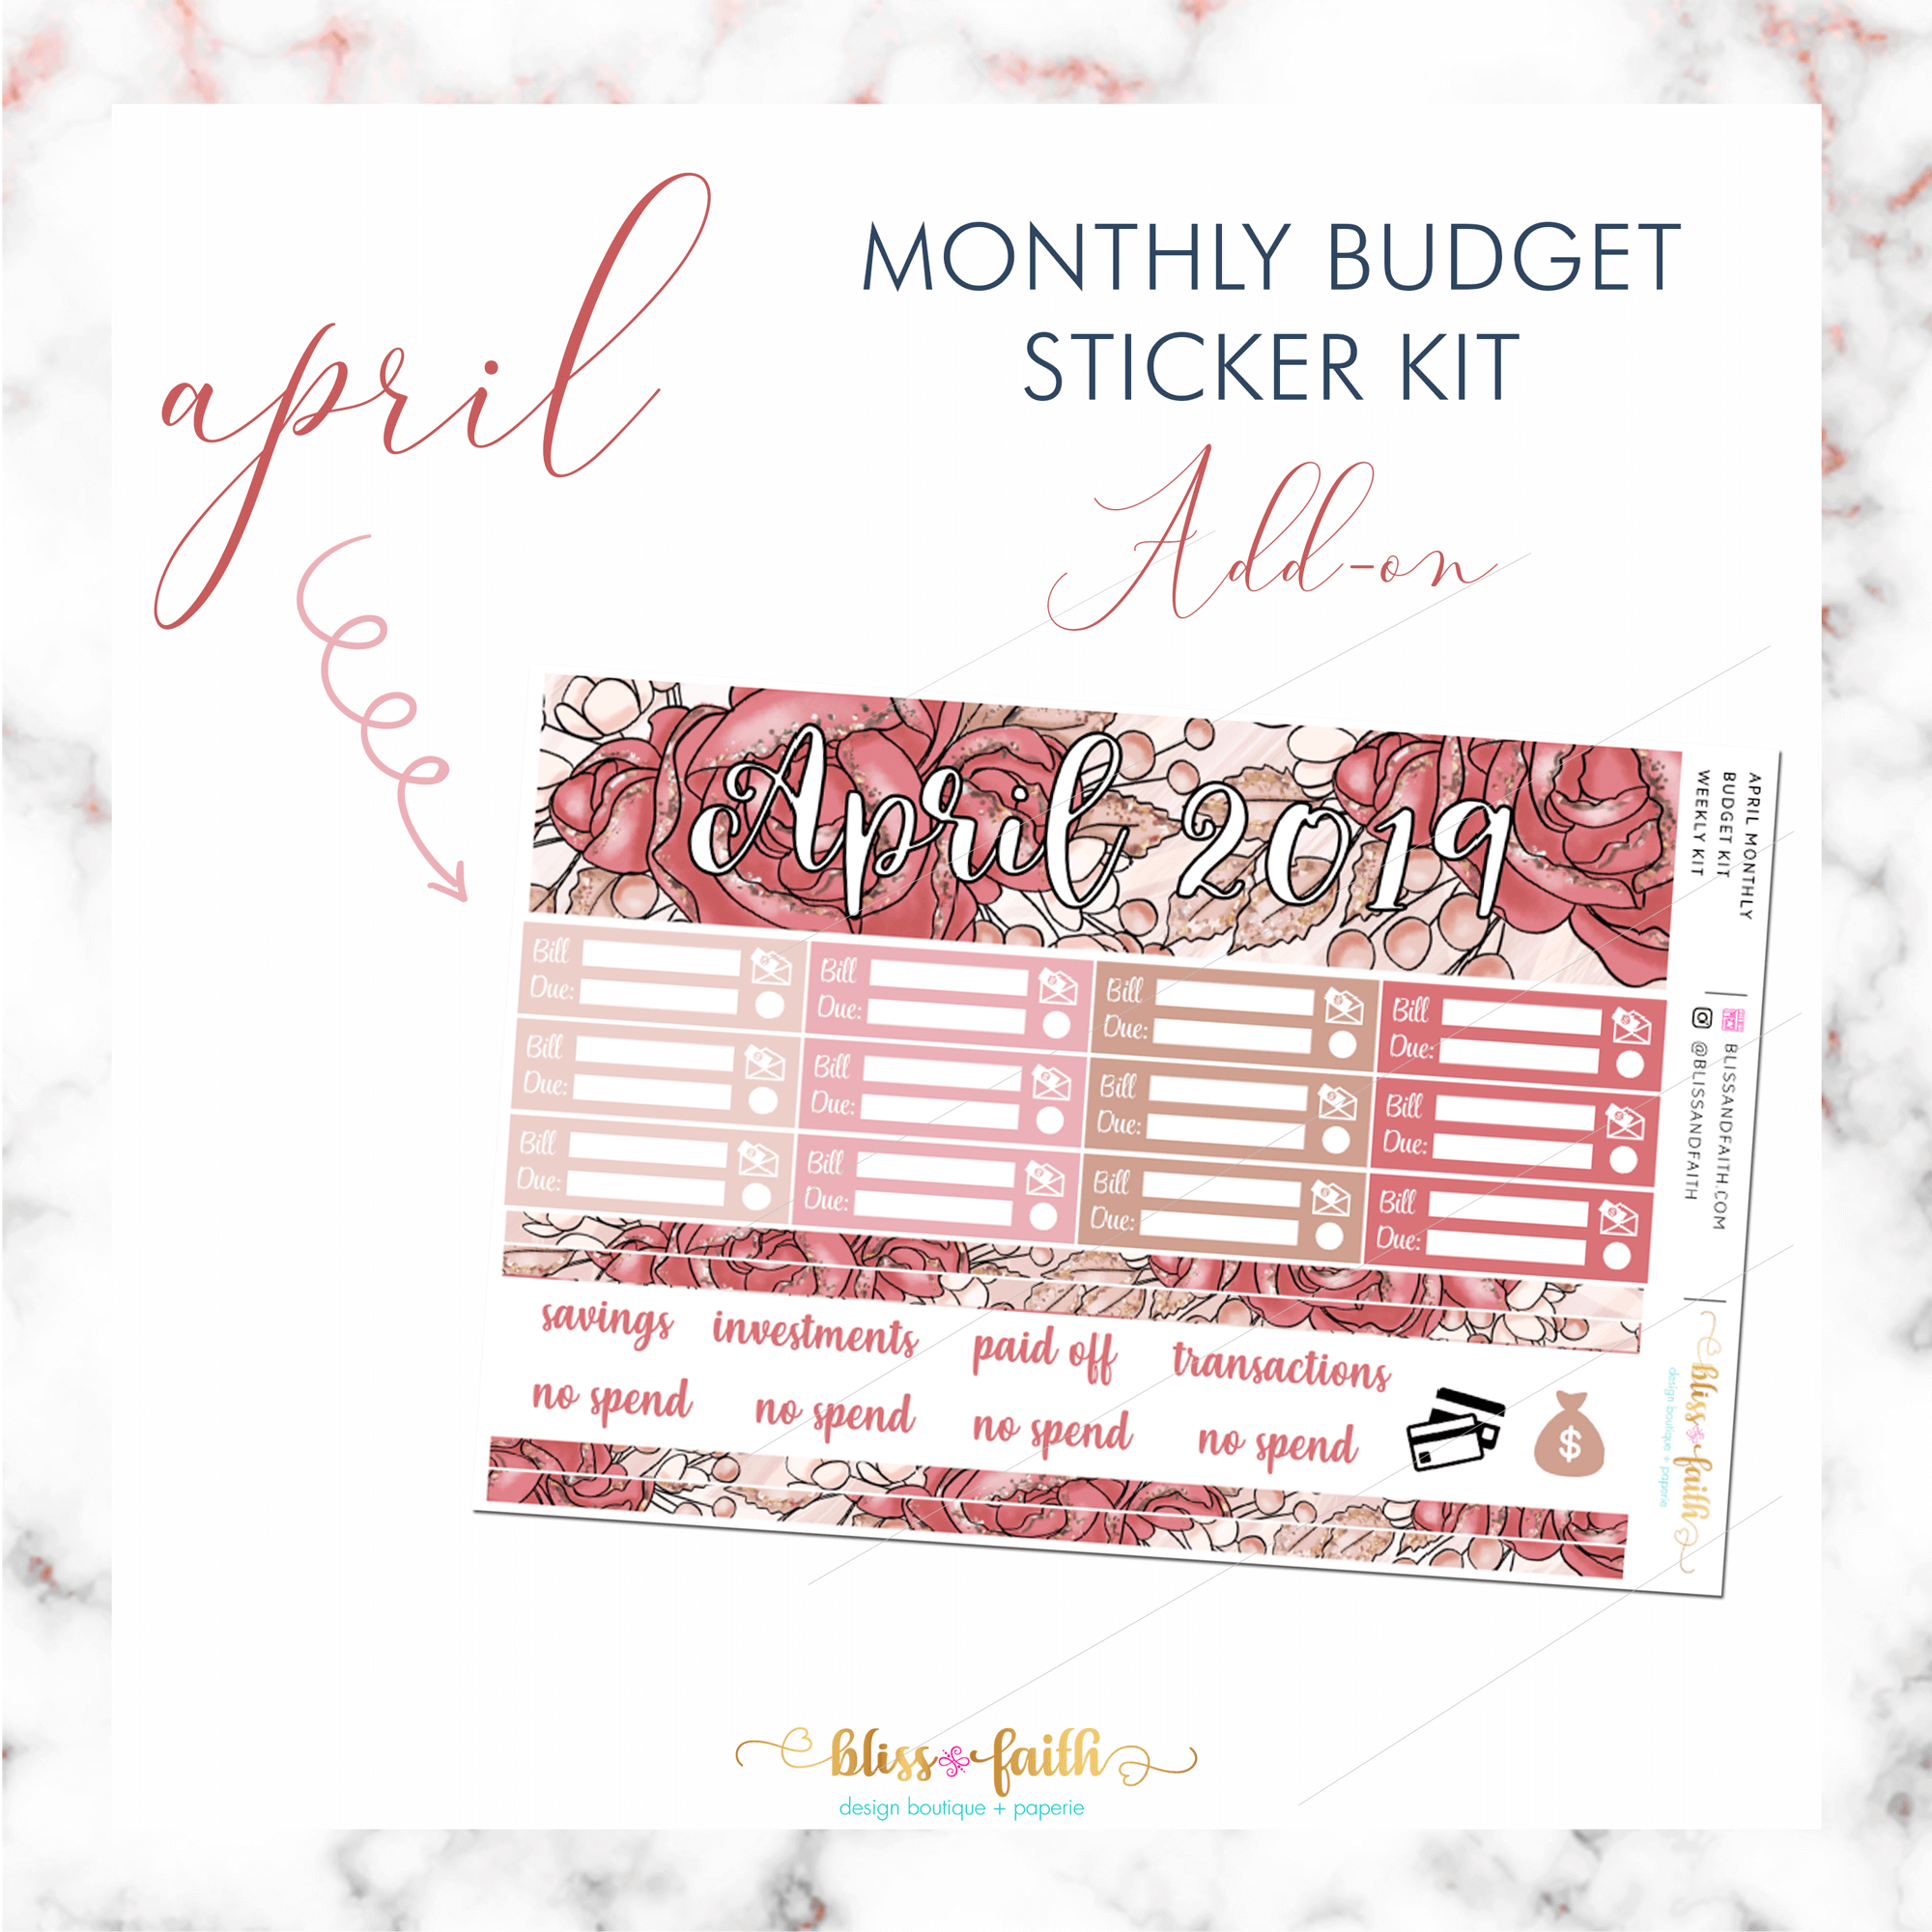 April Monthly Budget Sticker Kit Add-On | BlissandFaith.com